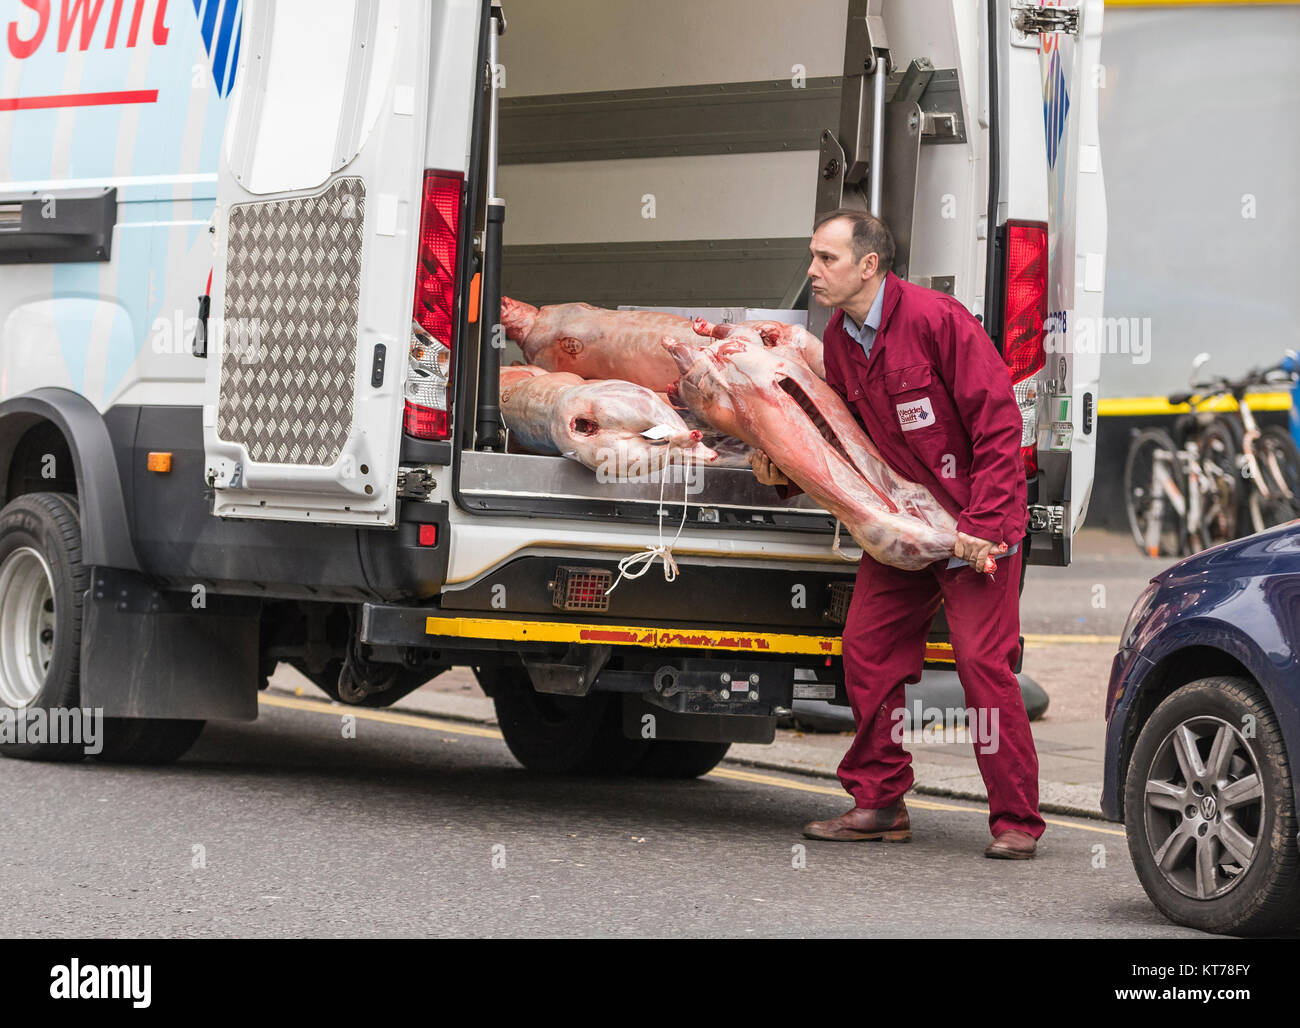 Man unloading dead animal carcasses from a van for a butchers shop in England, UK. Meat delivery. Delivering meat. - Stock Image